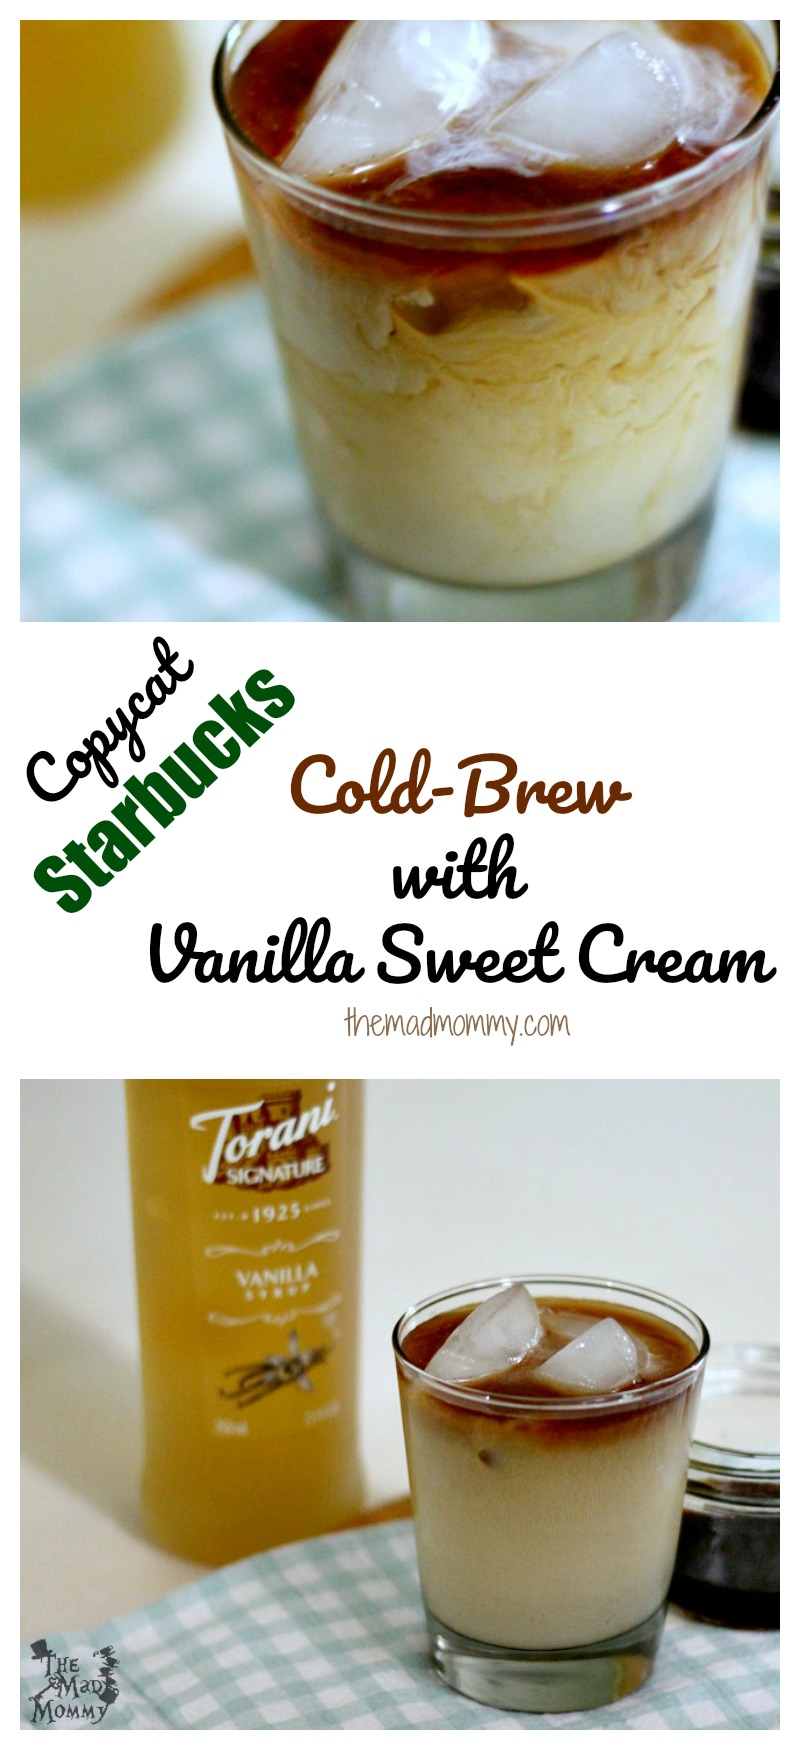 This Copycat Starbucks Cold-Brew with Vanilla Sweet Cream is simple to make and even easier to enjoy! I love being able to have a glass whenever I like!